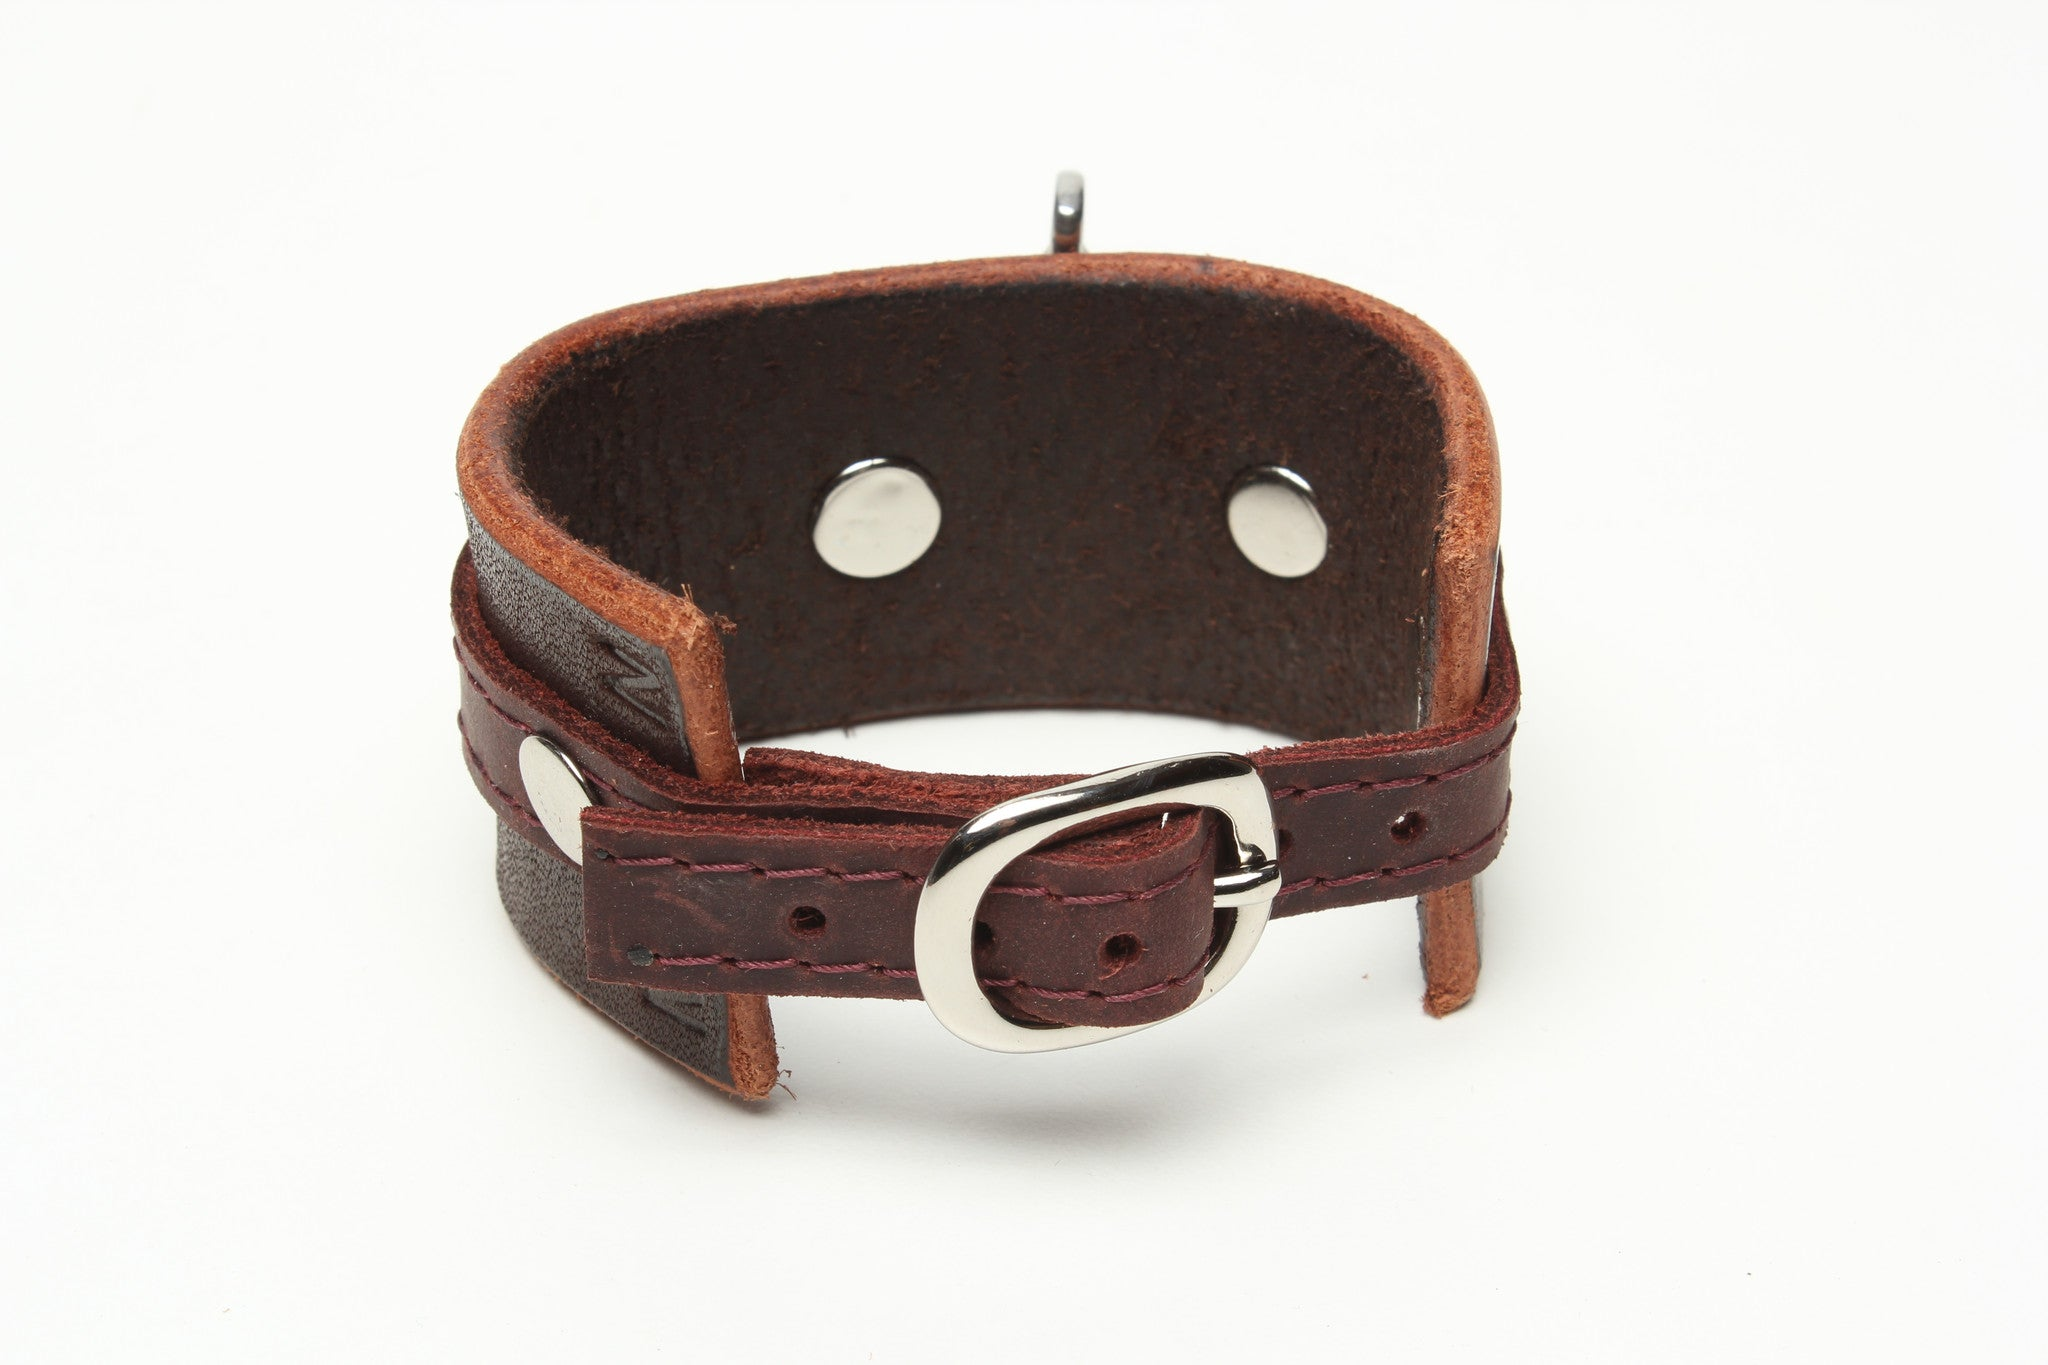 LATIGO LEATHER CUFF WITH ANCHOR SHACKLE brown by nyet jewelry.